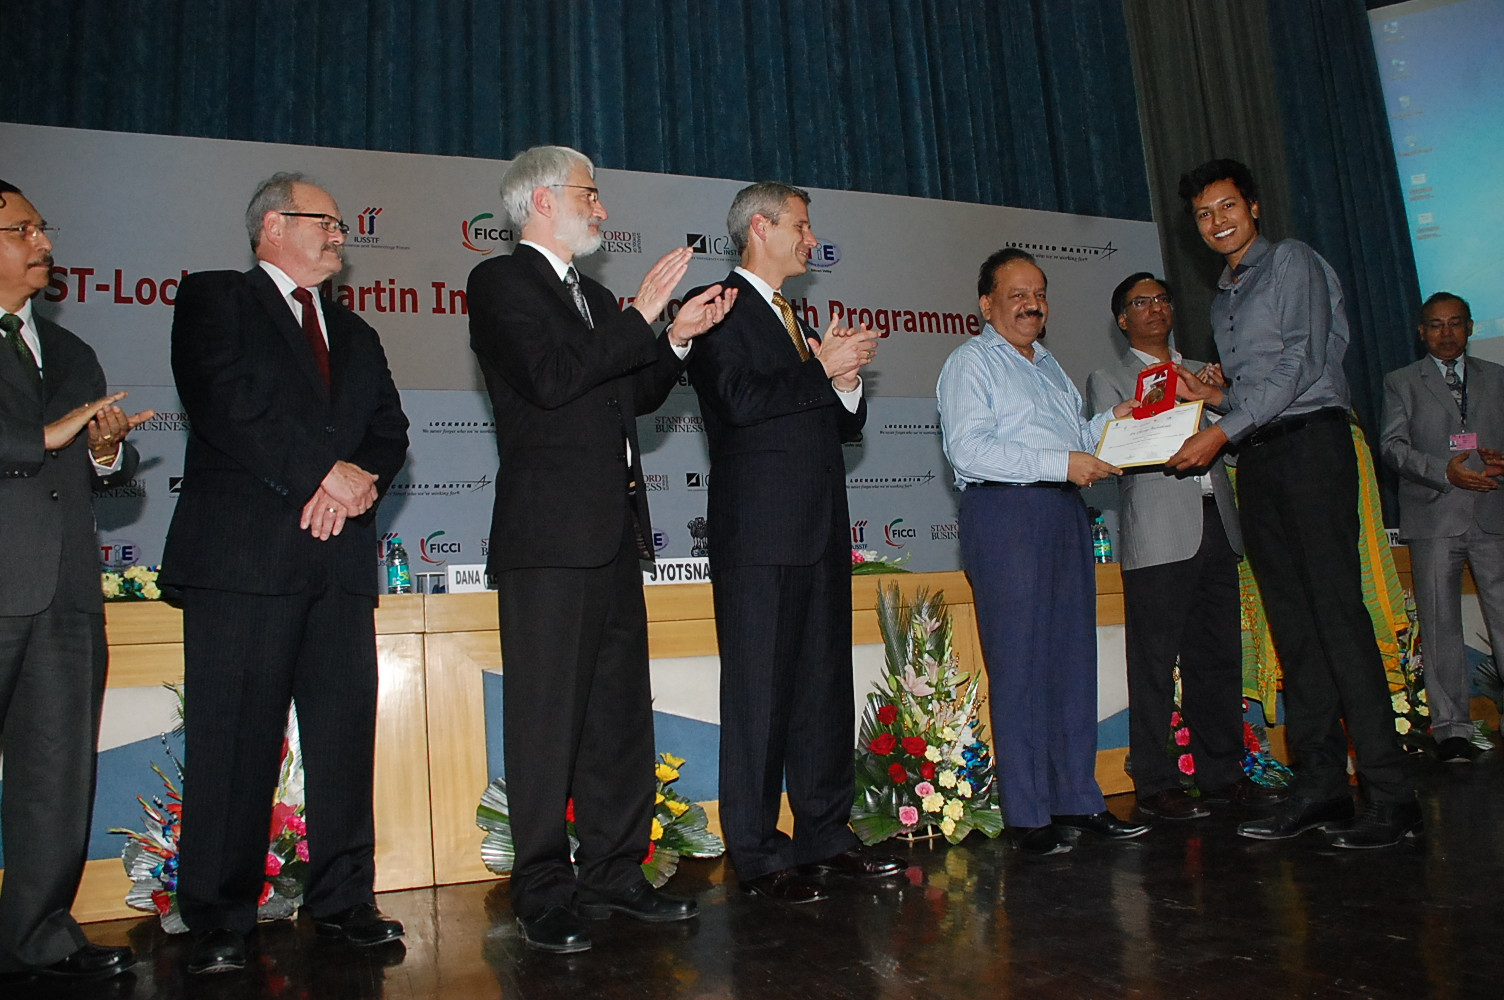 Lockheed Martin, Stanford GSB, Univ of Texas IC2, FICCI, USSTF copresenting the award